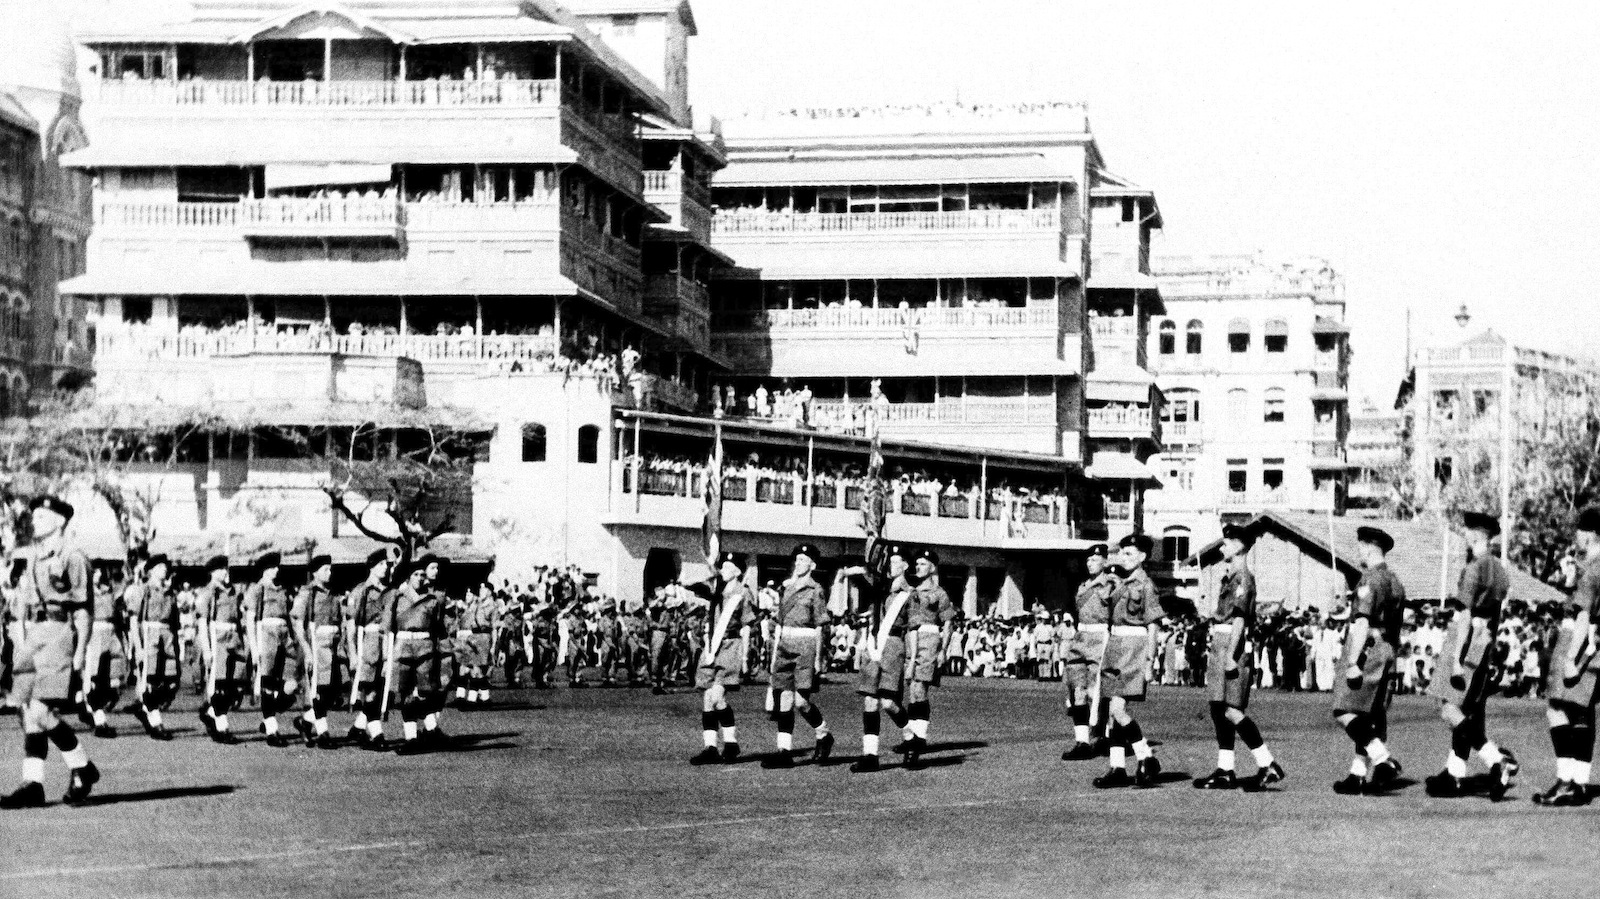 Troops of the Somerset light infantry, last British troops to leave India, parade in Bombay, on Feb. 28, 1948, prior to their departure for the United Kingdom aboard the empress of Australia. In center are the regimental color bearers. In left center background is part of the guard of honor provided by units of the Indian Army.